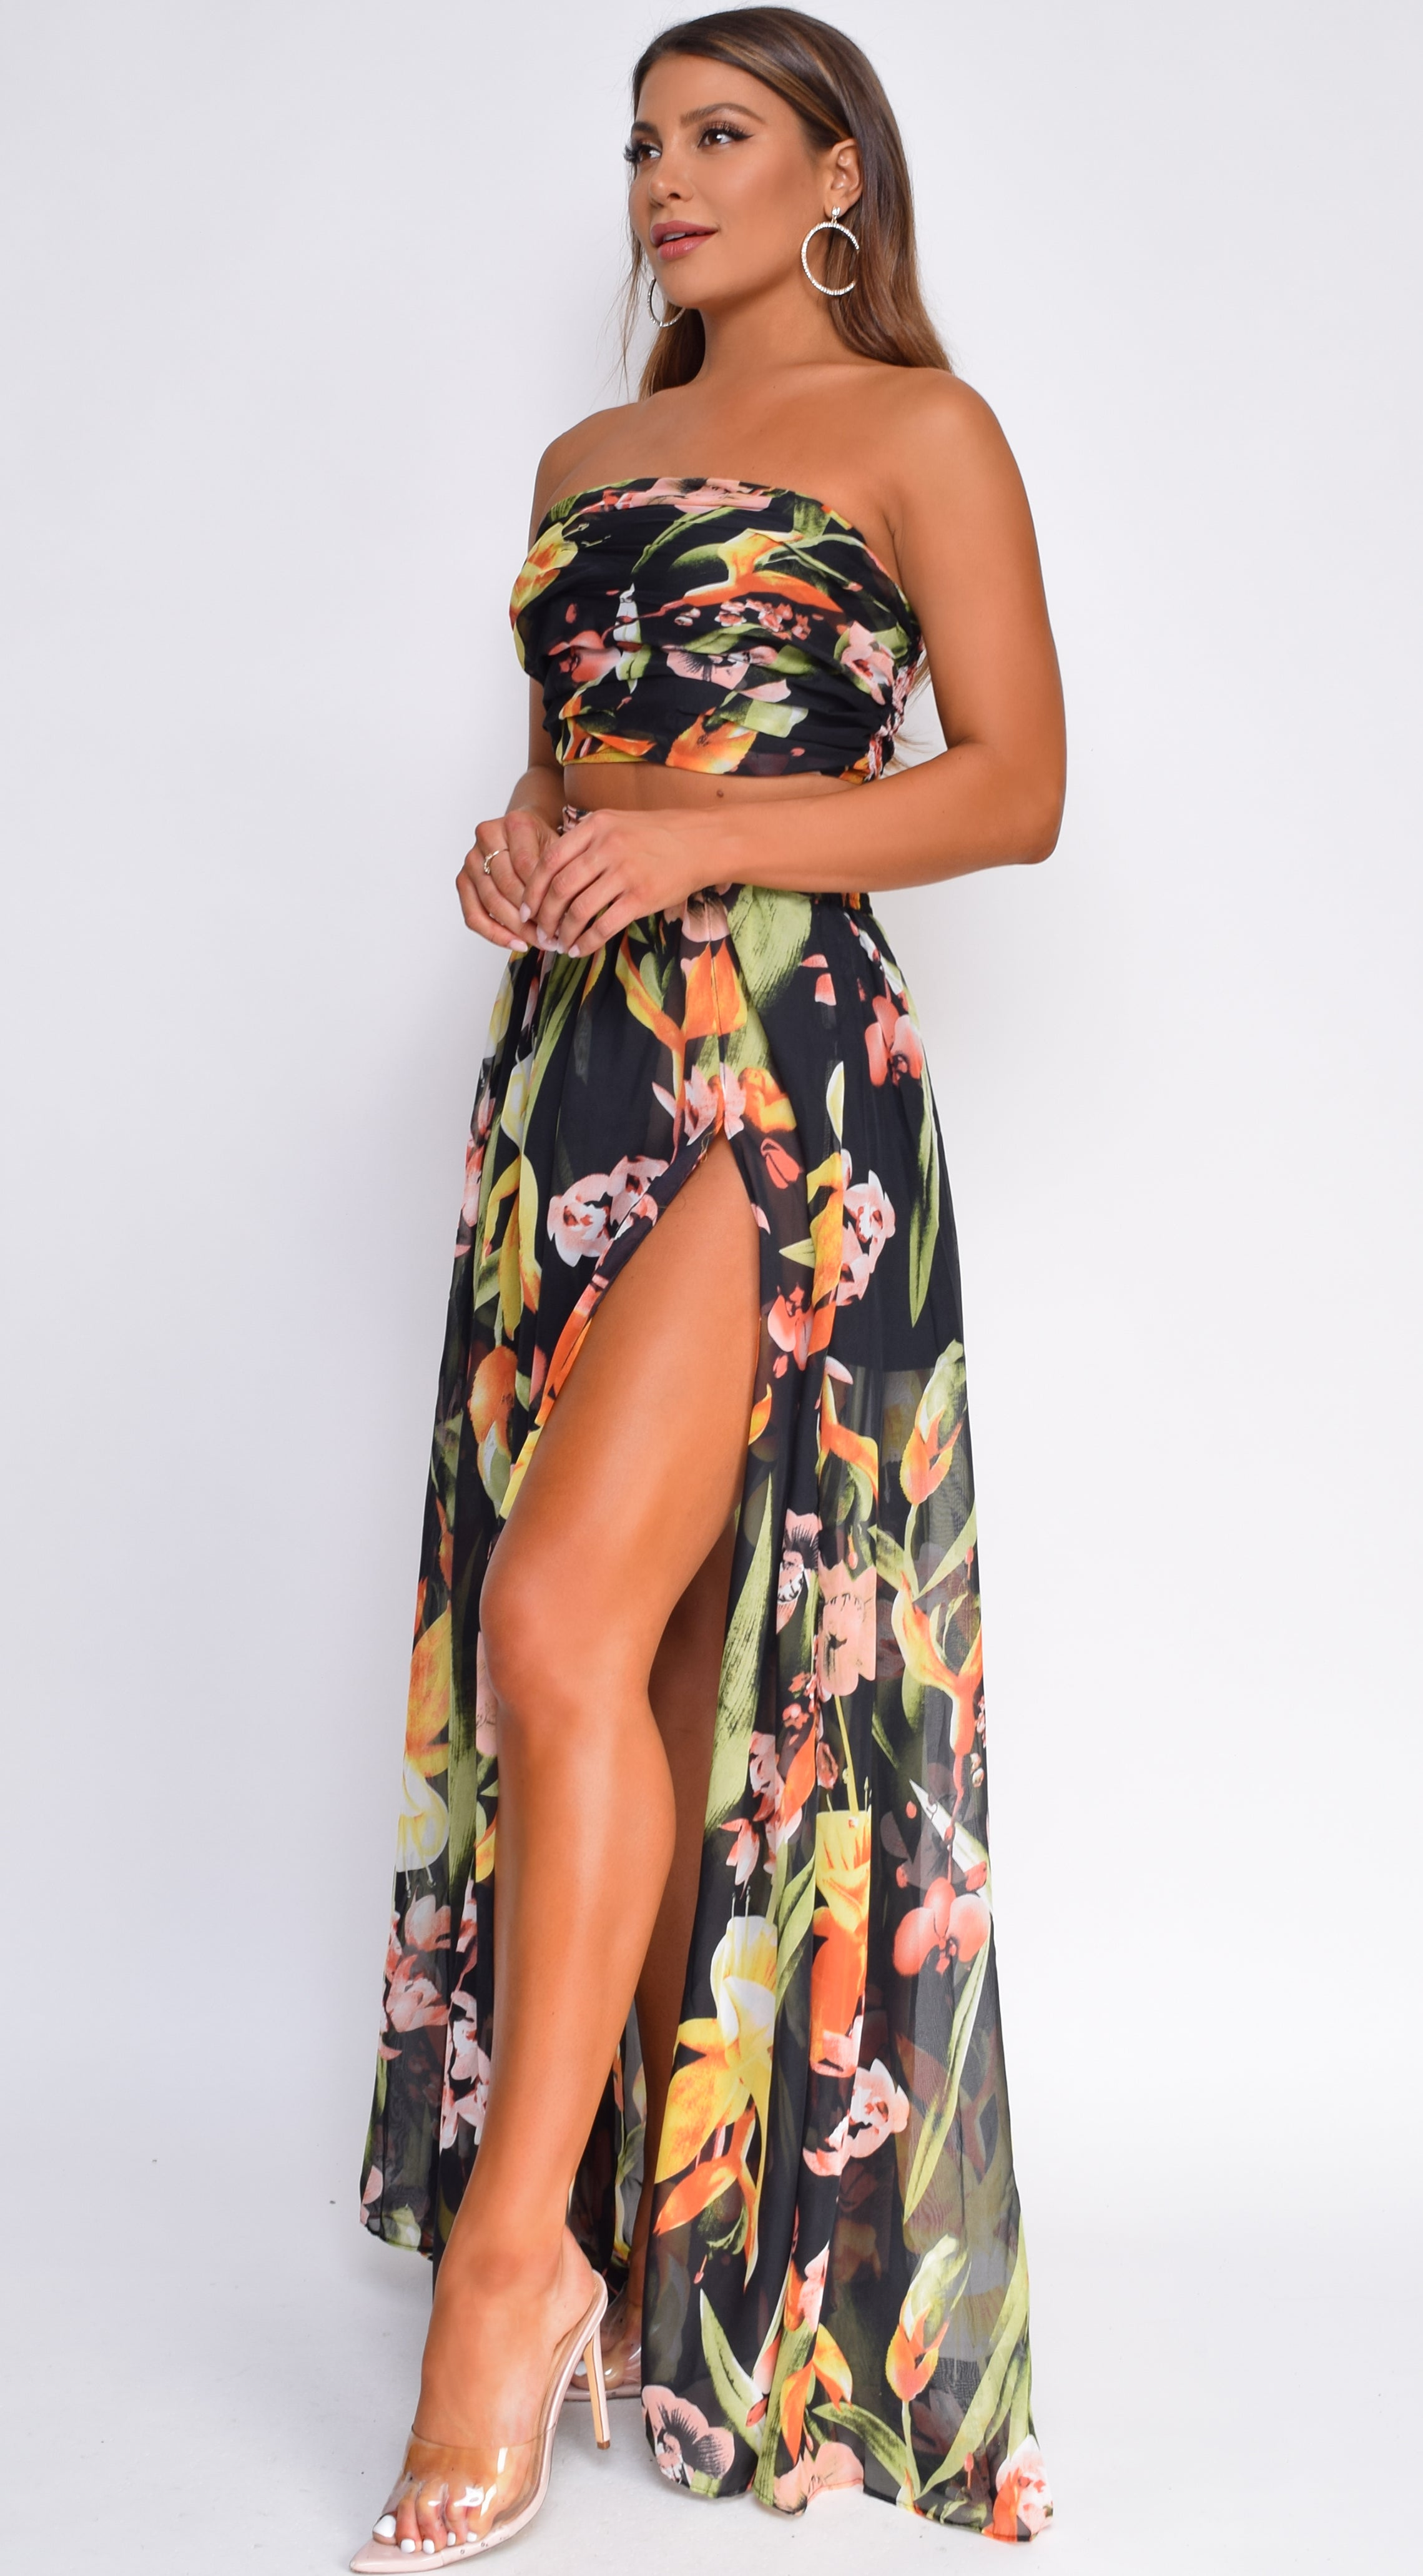 Tuiara Black Tropical Floral Print Top And Skirt Set